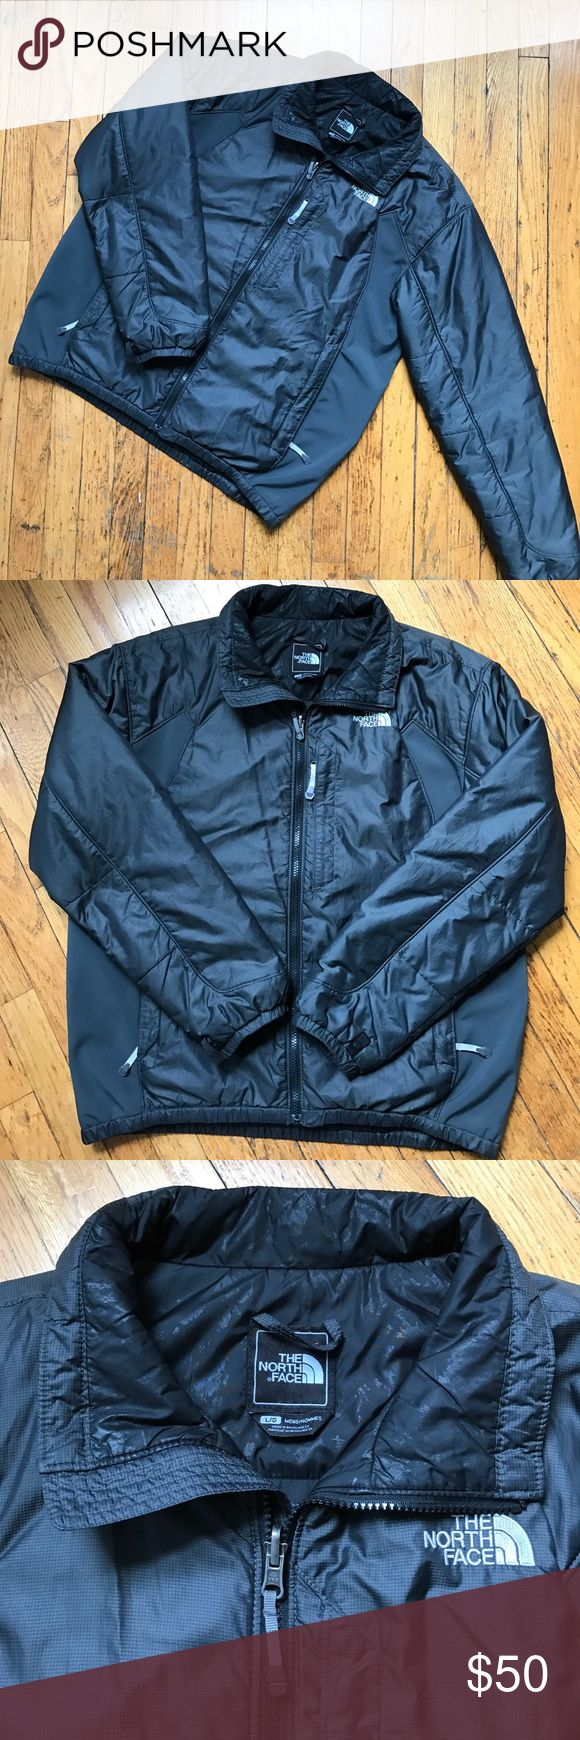 North Face Men's Winter Coat Size large. Dark grey. Great condition! Main body is 52% nylon and 48% polyester, side panel is 59% polyester, 35% nylon, and 6% elastane. Used. Any questions feel free to ask! The North Face Jackets & Coats